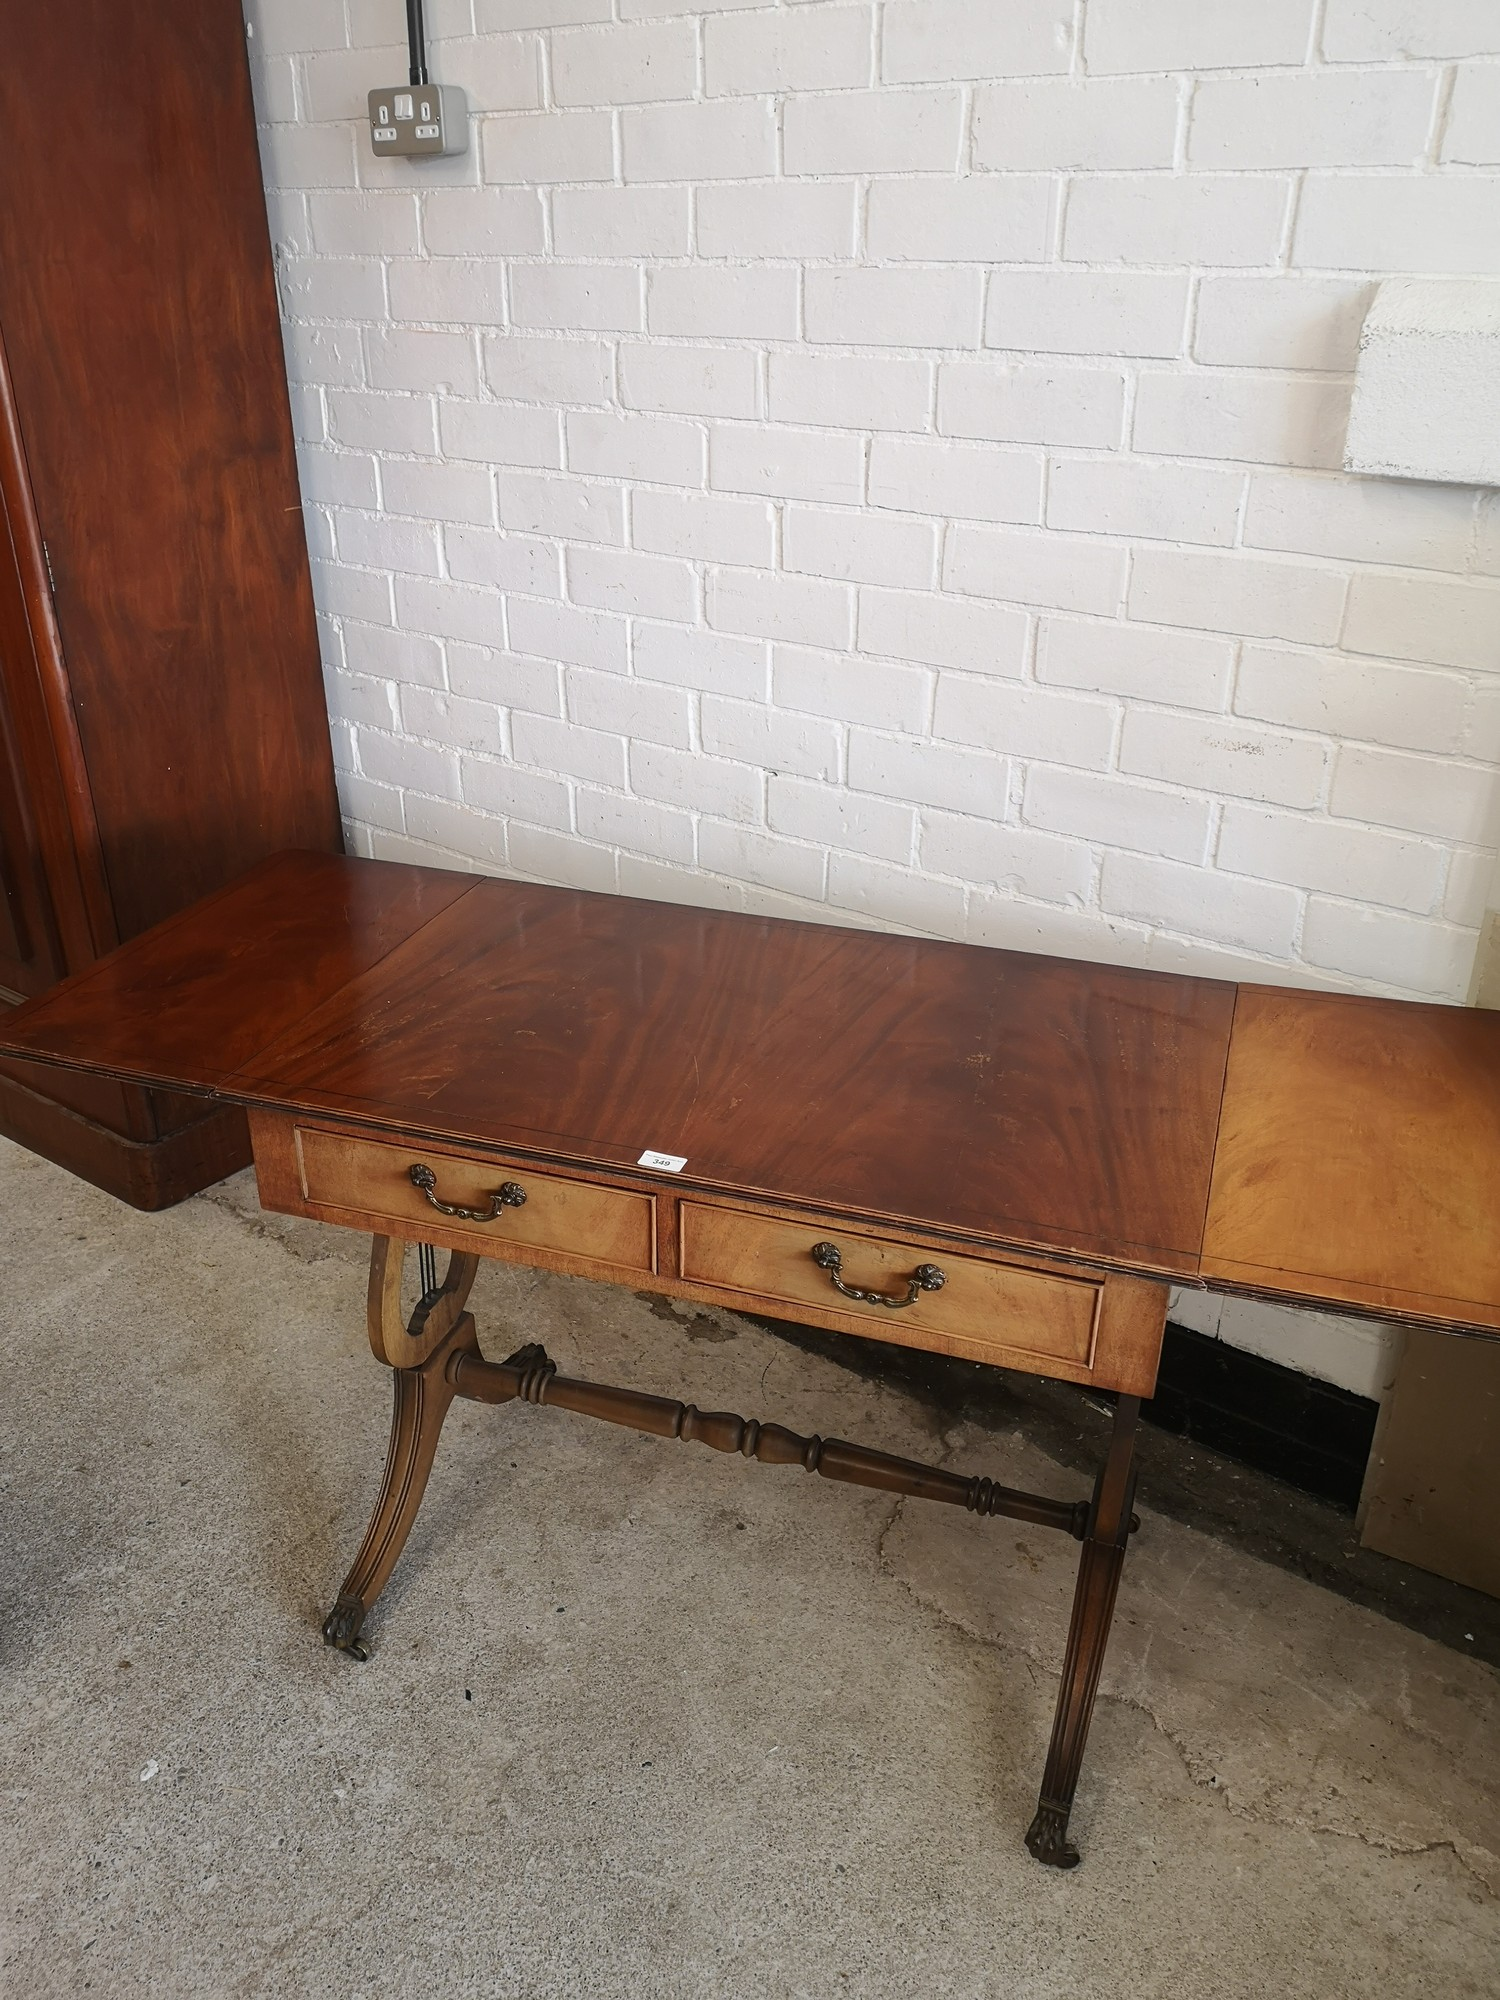 Reproduction drop leaf liar end table with 2 drawers. 5ft extended out with leafs in length. - Image 4 of 7